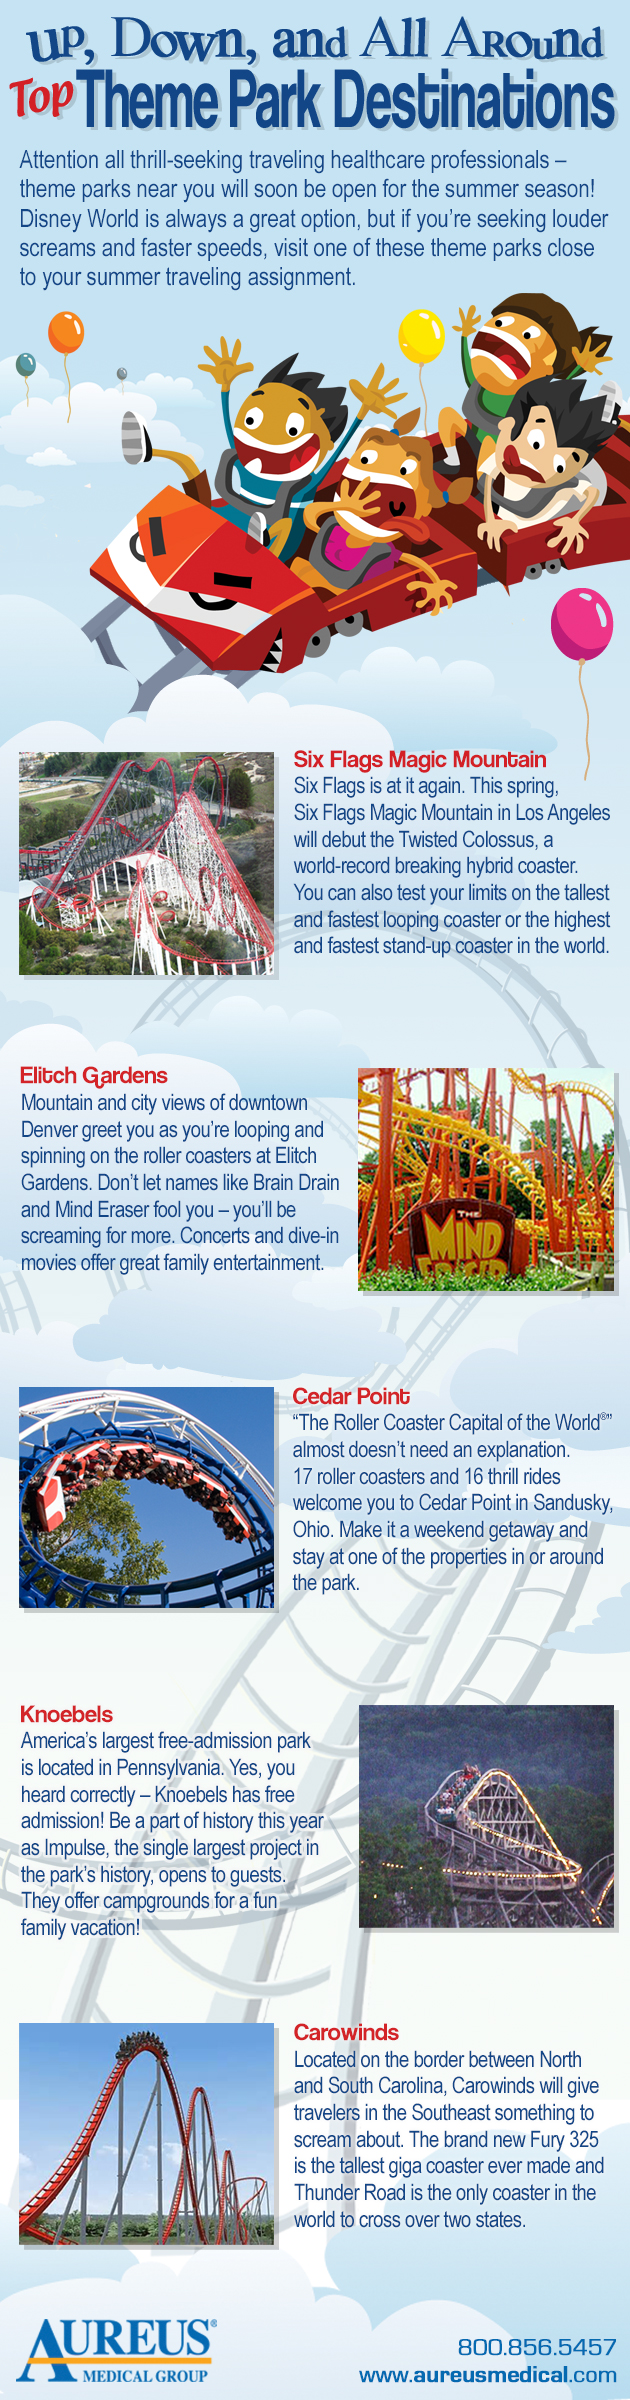 Top Theme Park Destinations